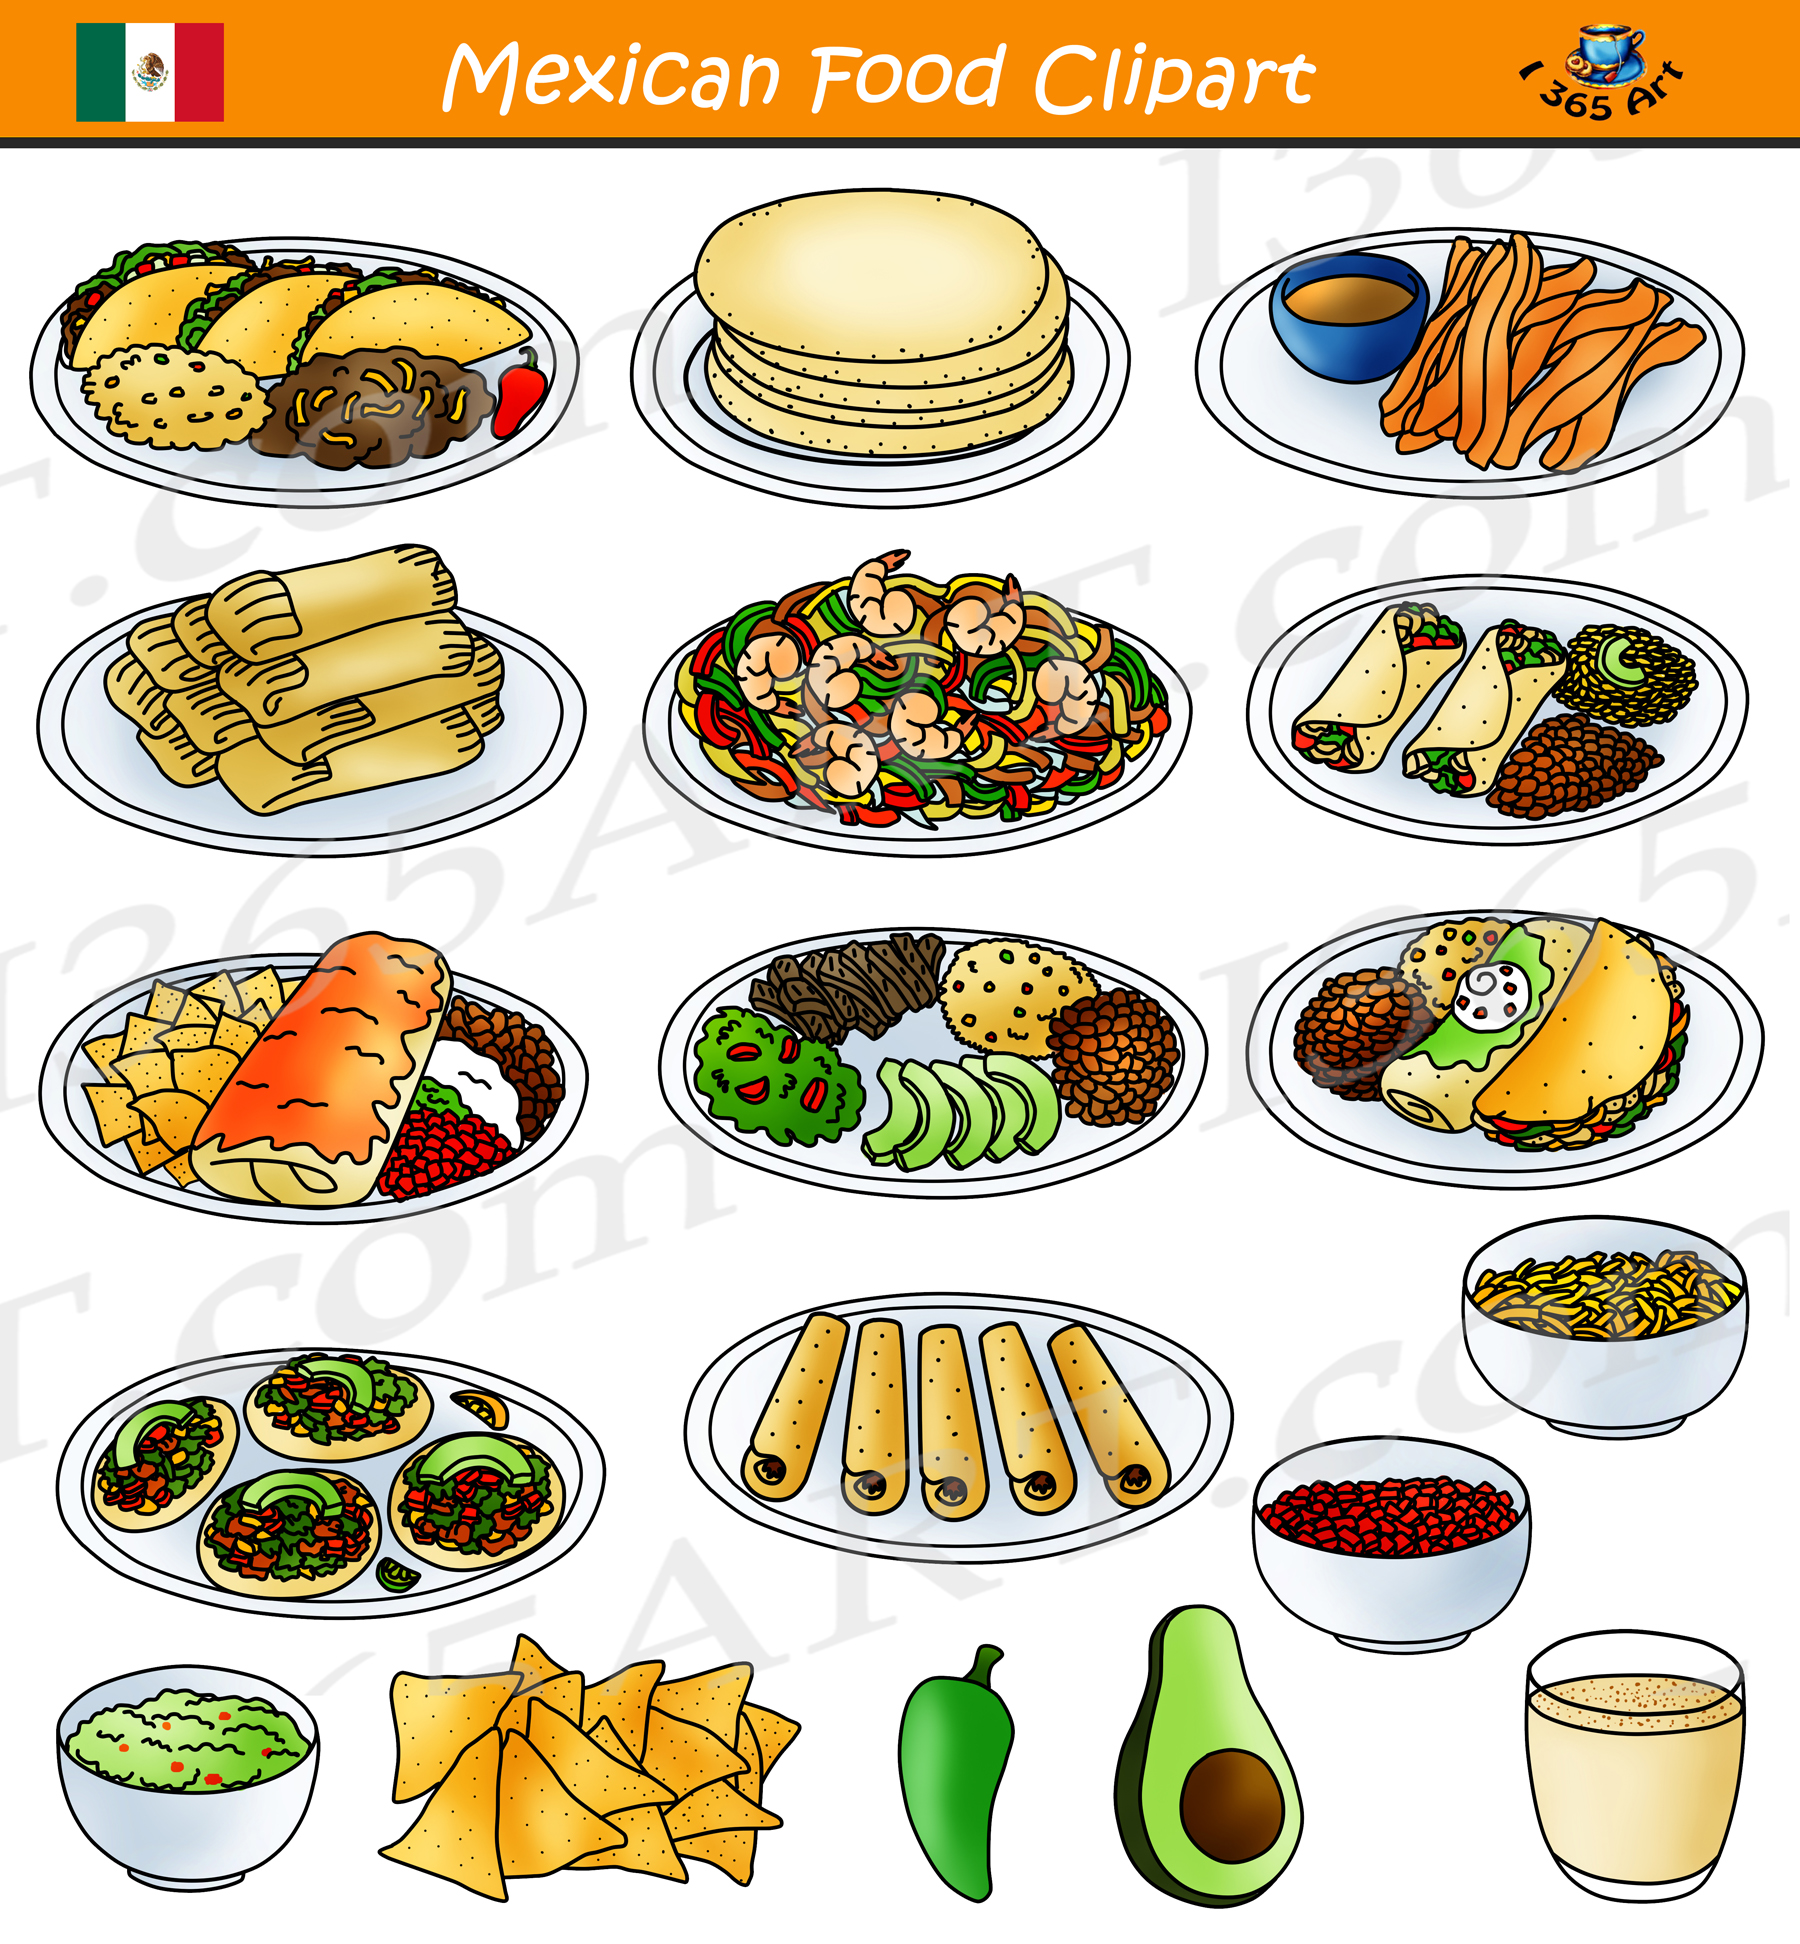 Mexican food cliparts clip art free library Mexican Food Clipart - Comida Mexicana - School Clipart clip art free library